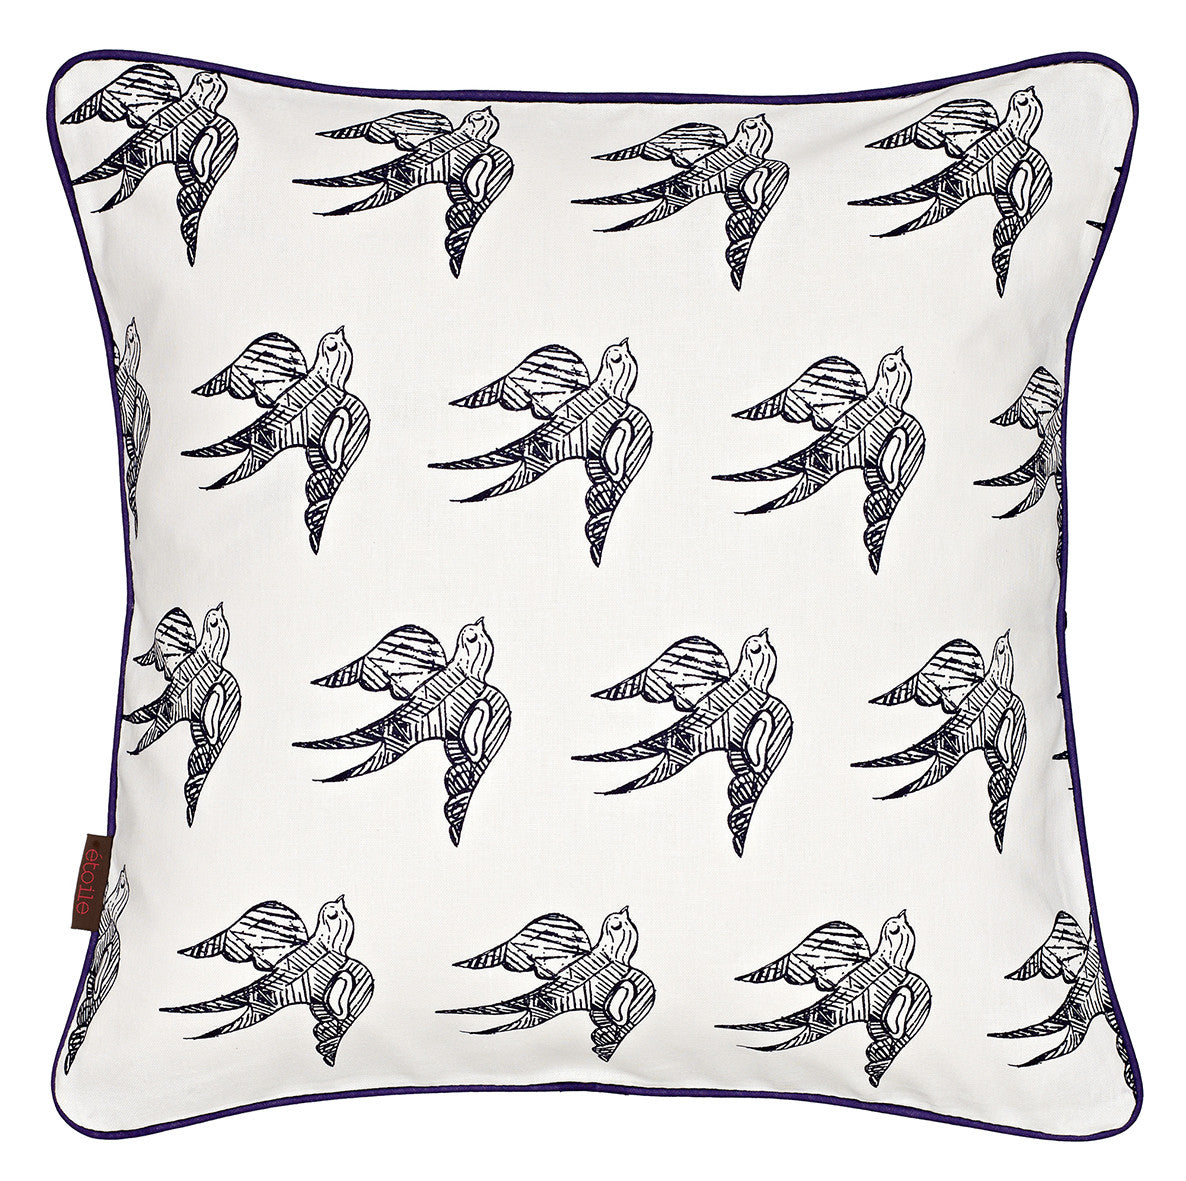 "Katia Swallow Bird Pattern Linen Throw Pillow in Dark Aubergine Purple 45x45cm 18x18"" Ships from Canada to USA"